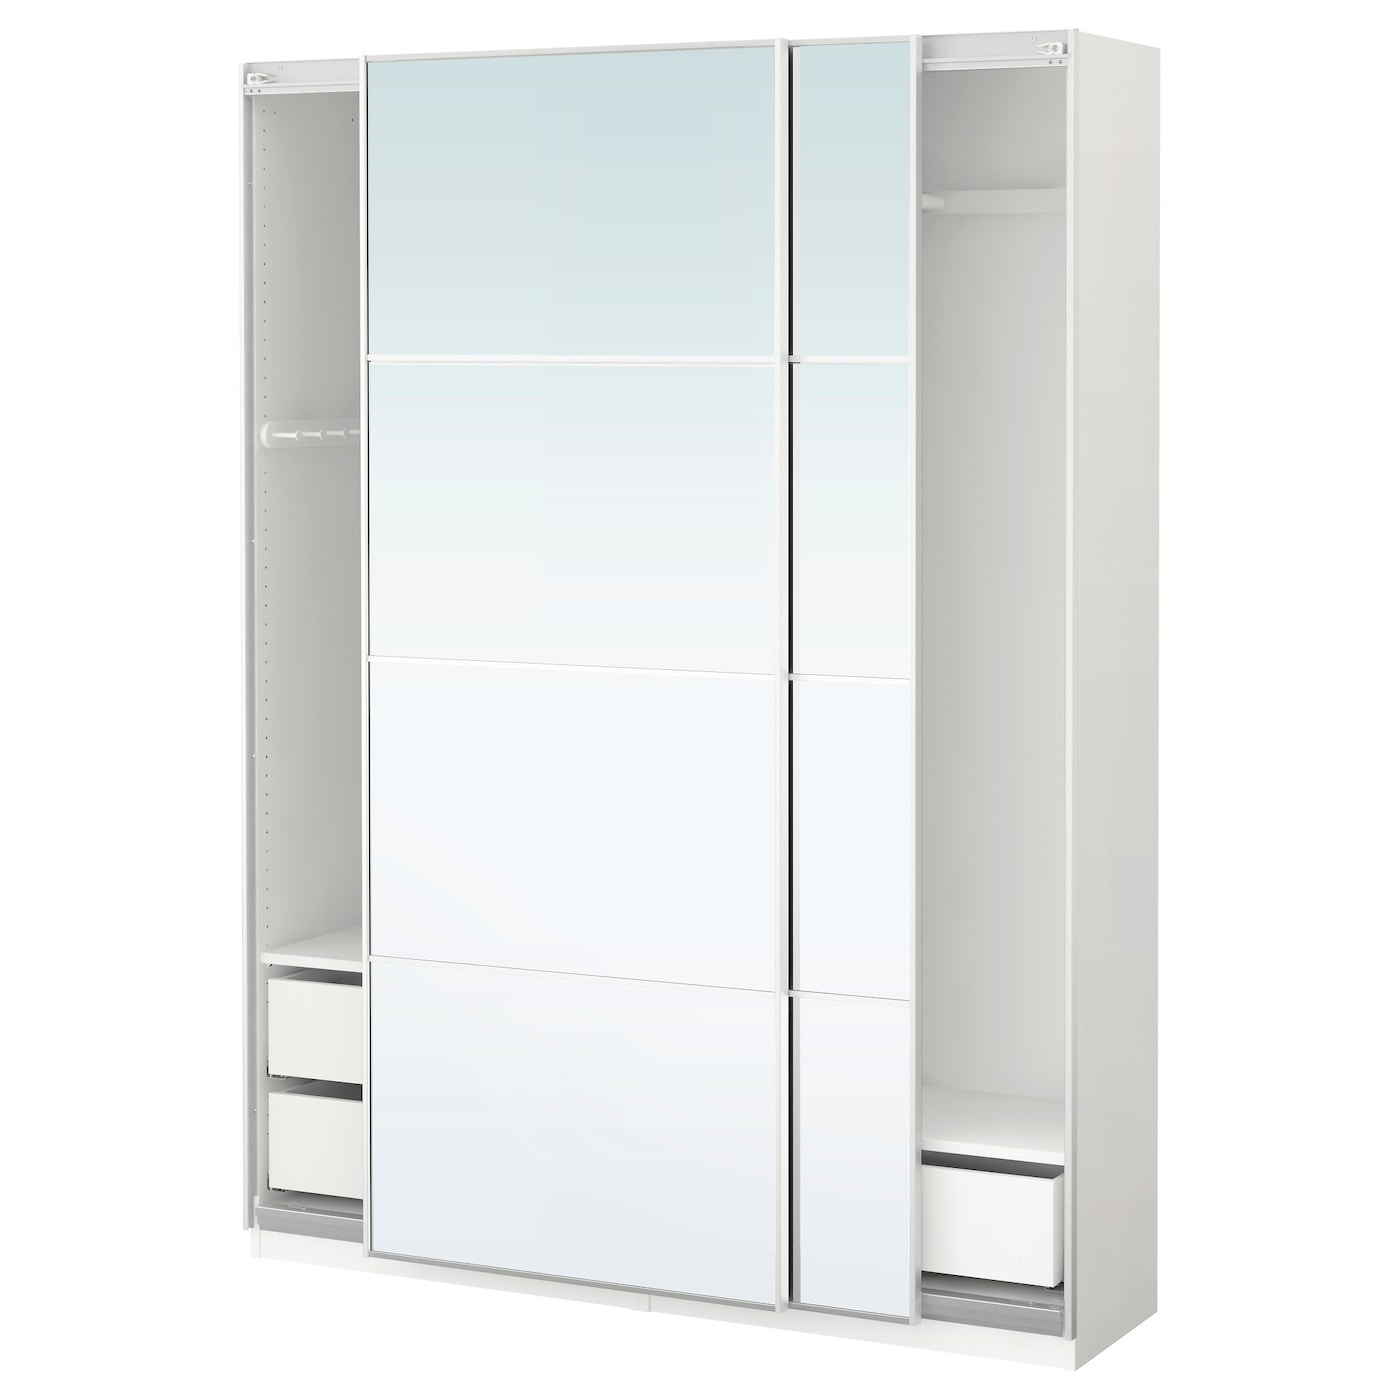 PAX Wardrobe White/auli mirror glass 150x44x201 cm - IKEA